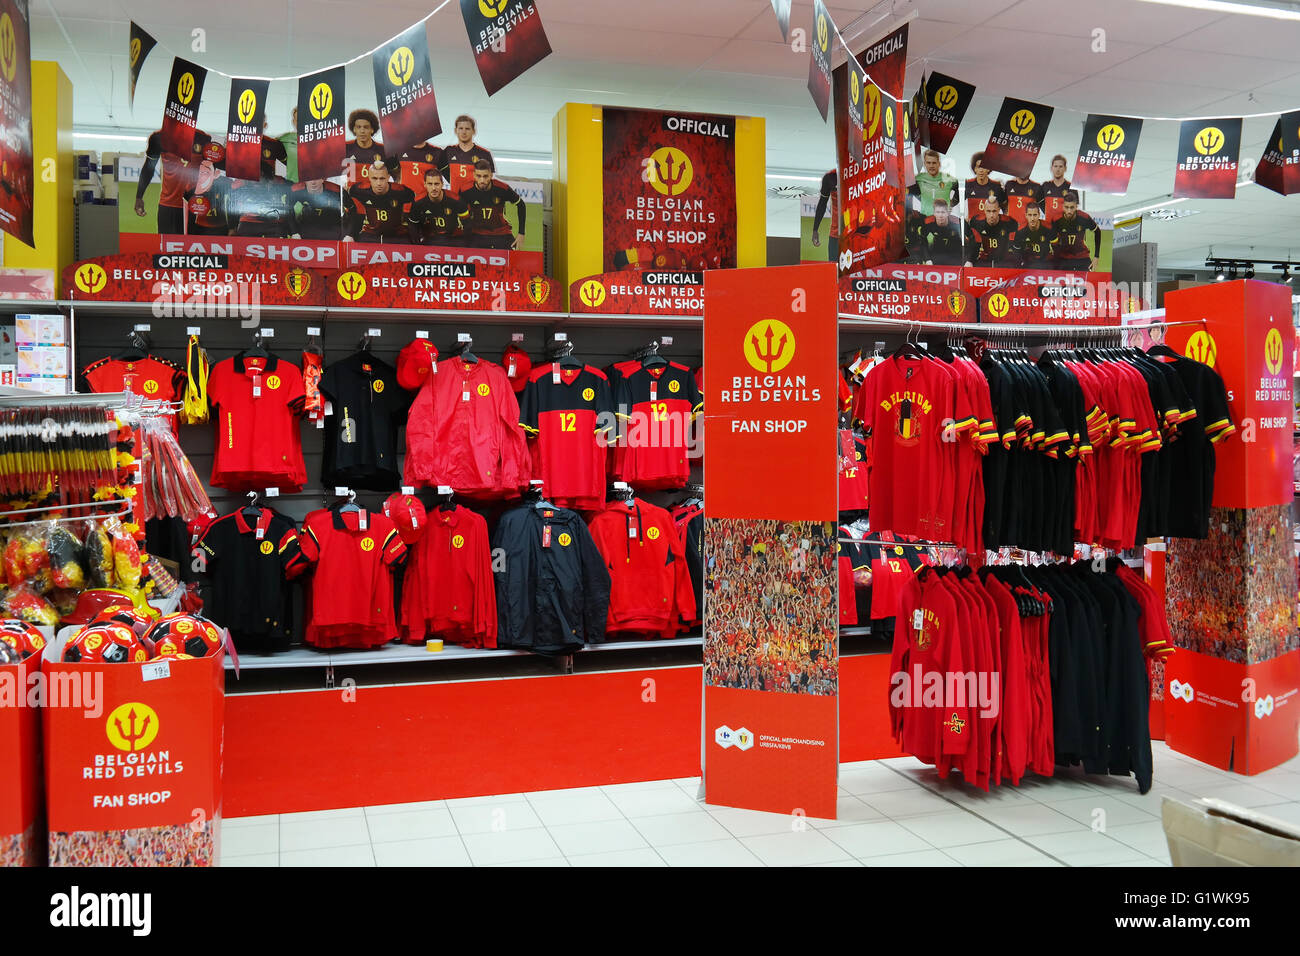 Fan shop department of 'The Red Devils', The Belgian national football team for Euro 2016, in a Carrefour - Stock Image